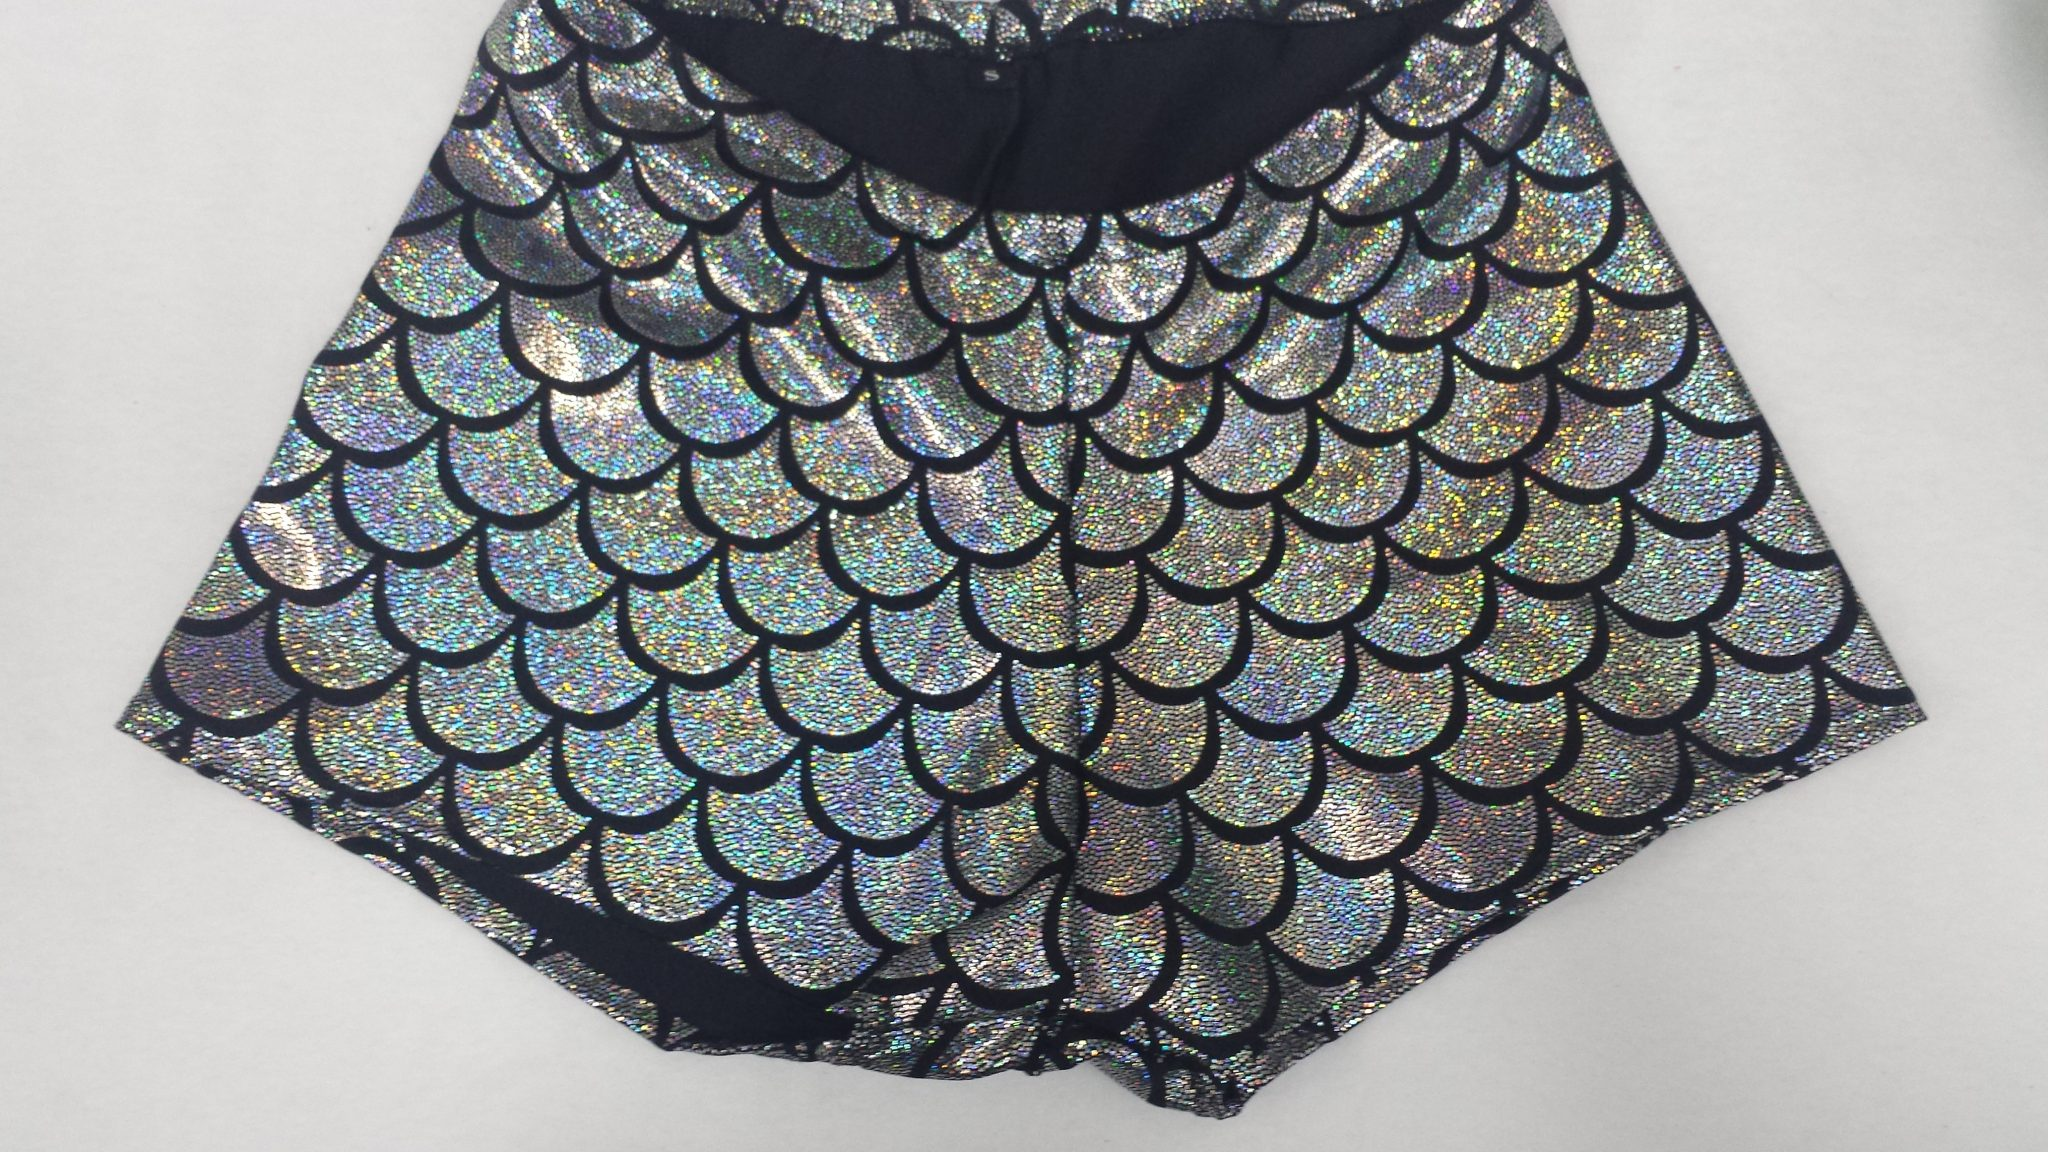 Jumbo Mermaid Short and Sweet roller derby style shorts, made to order